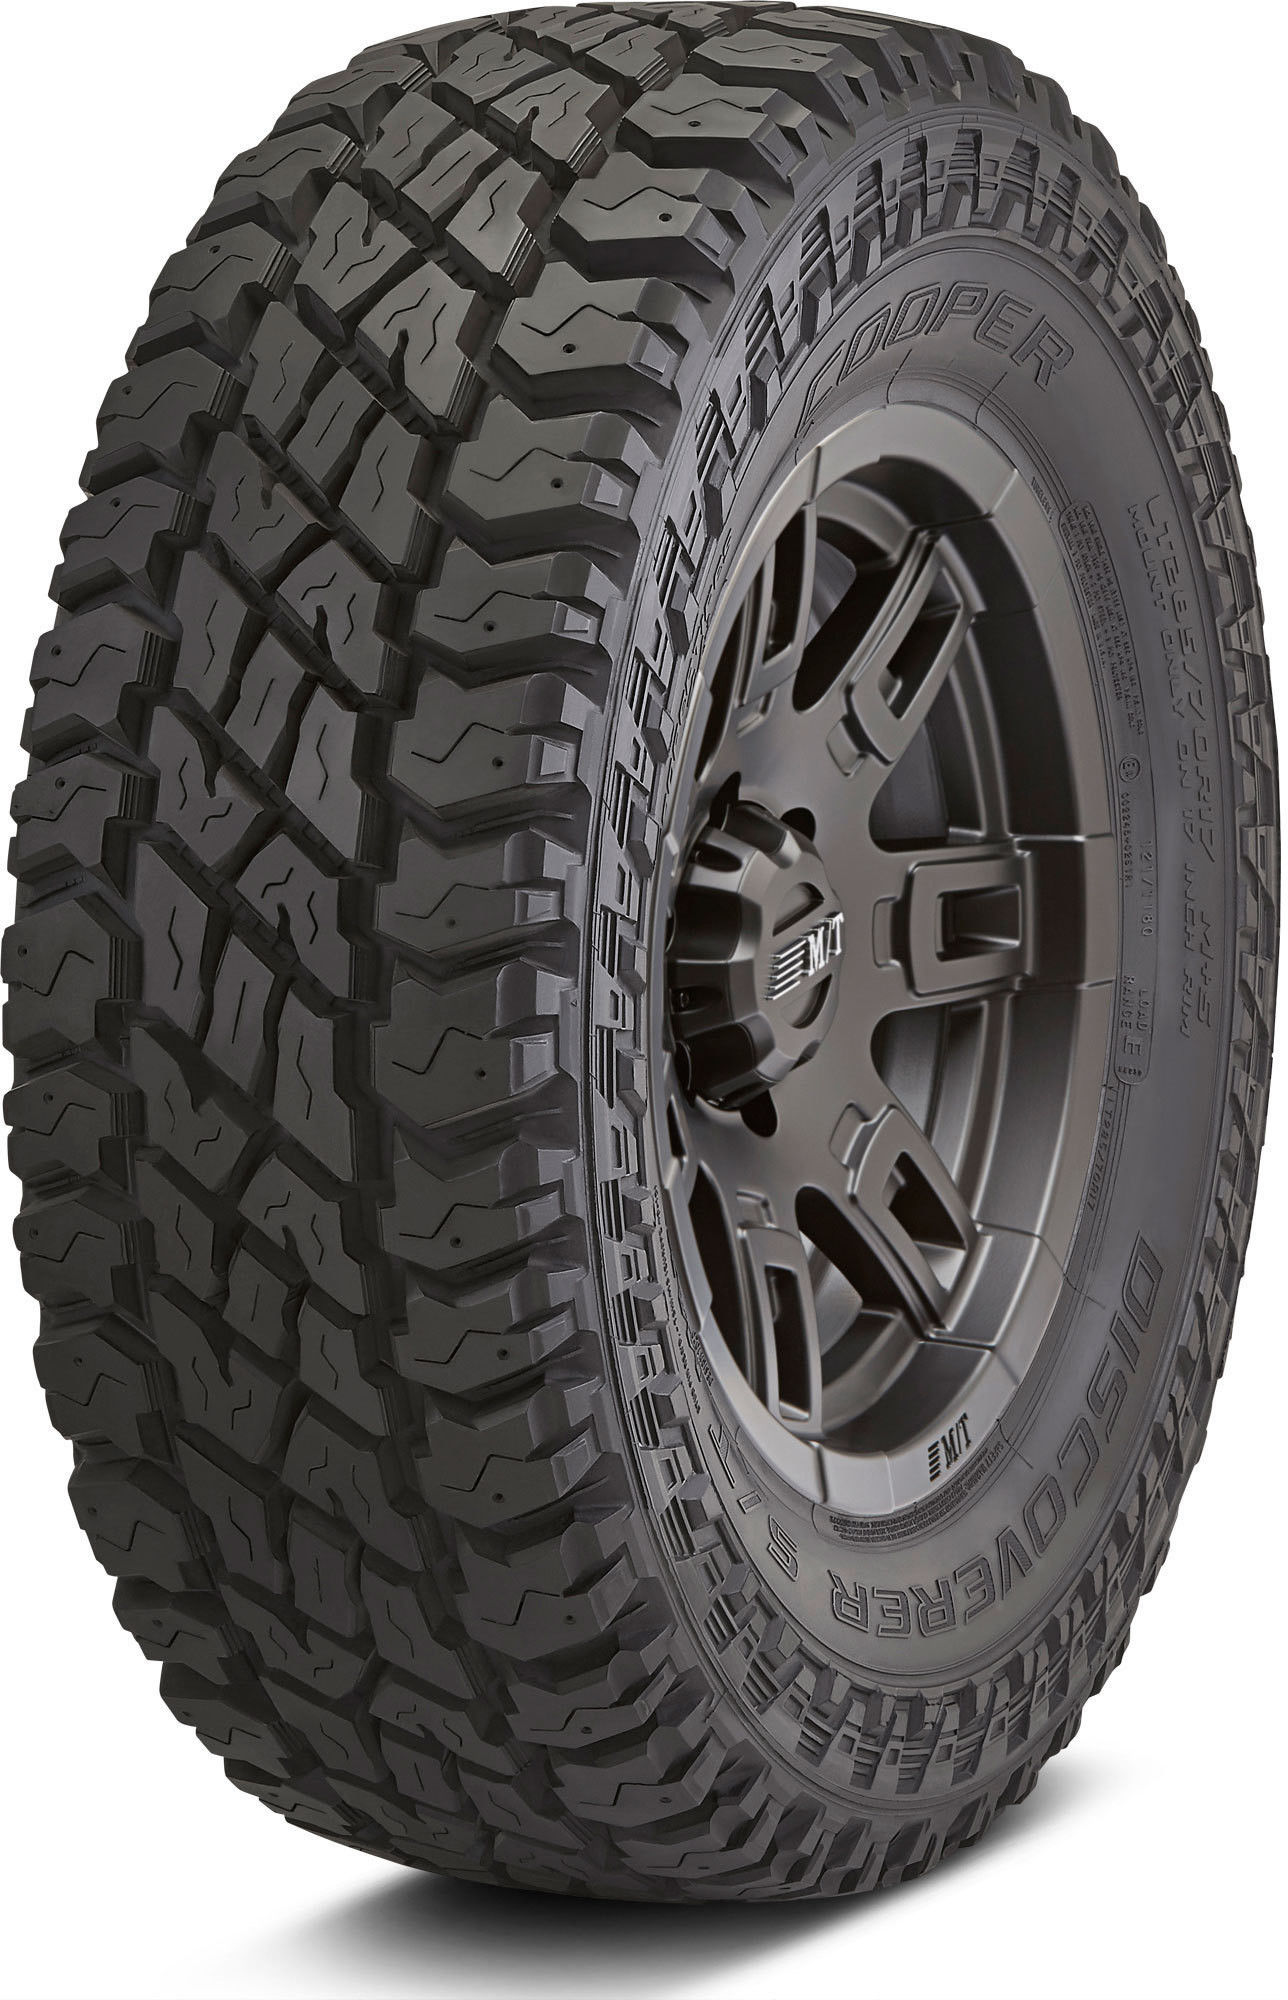 Cooper Discoverer S/T MAXX 235/80R17 120/117 Q BSW